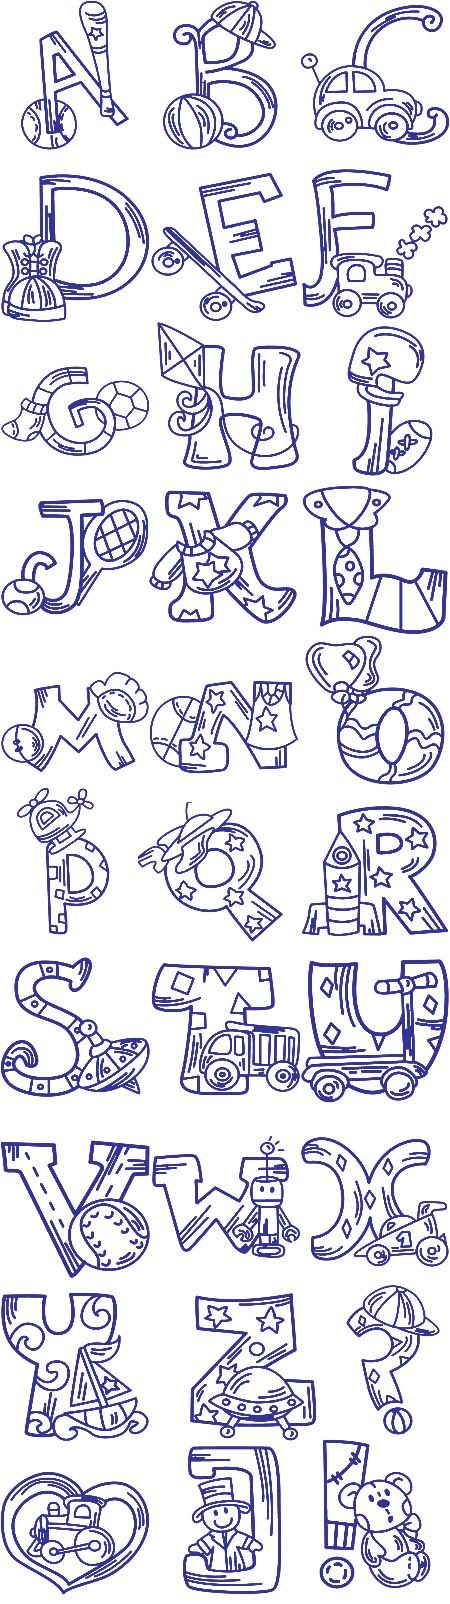 Free Embroidery Designs Sweet Embroidery Designs Index Page Font